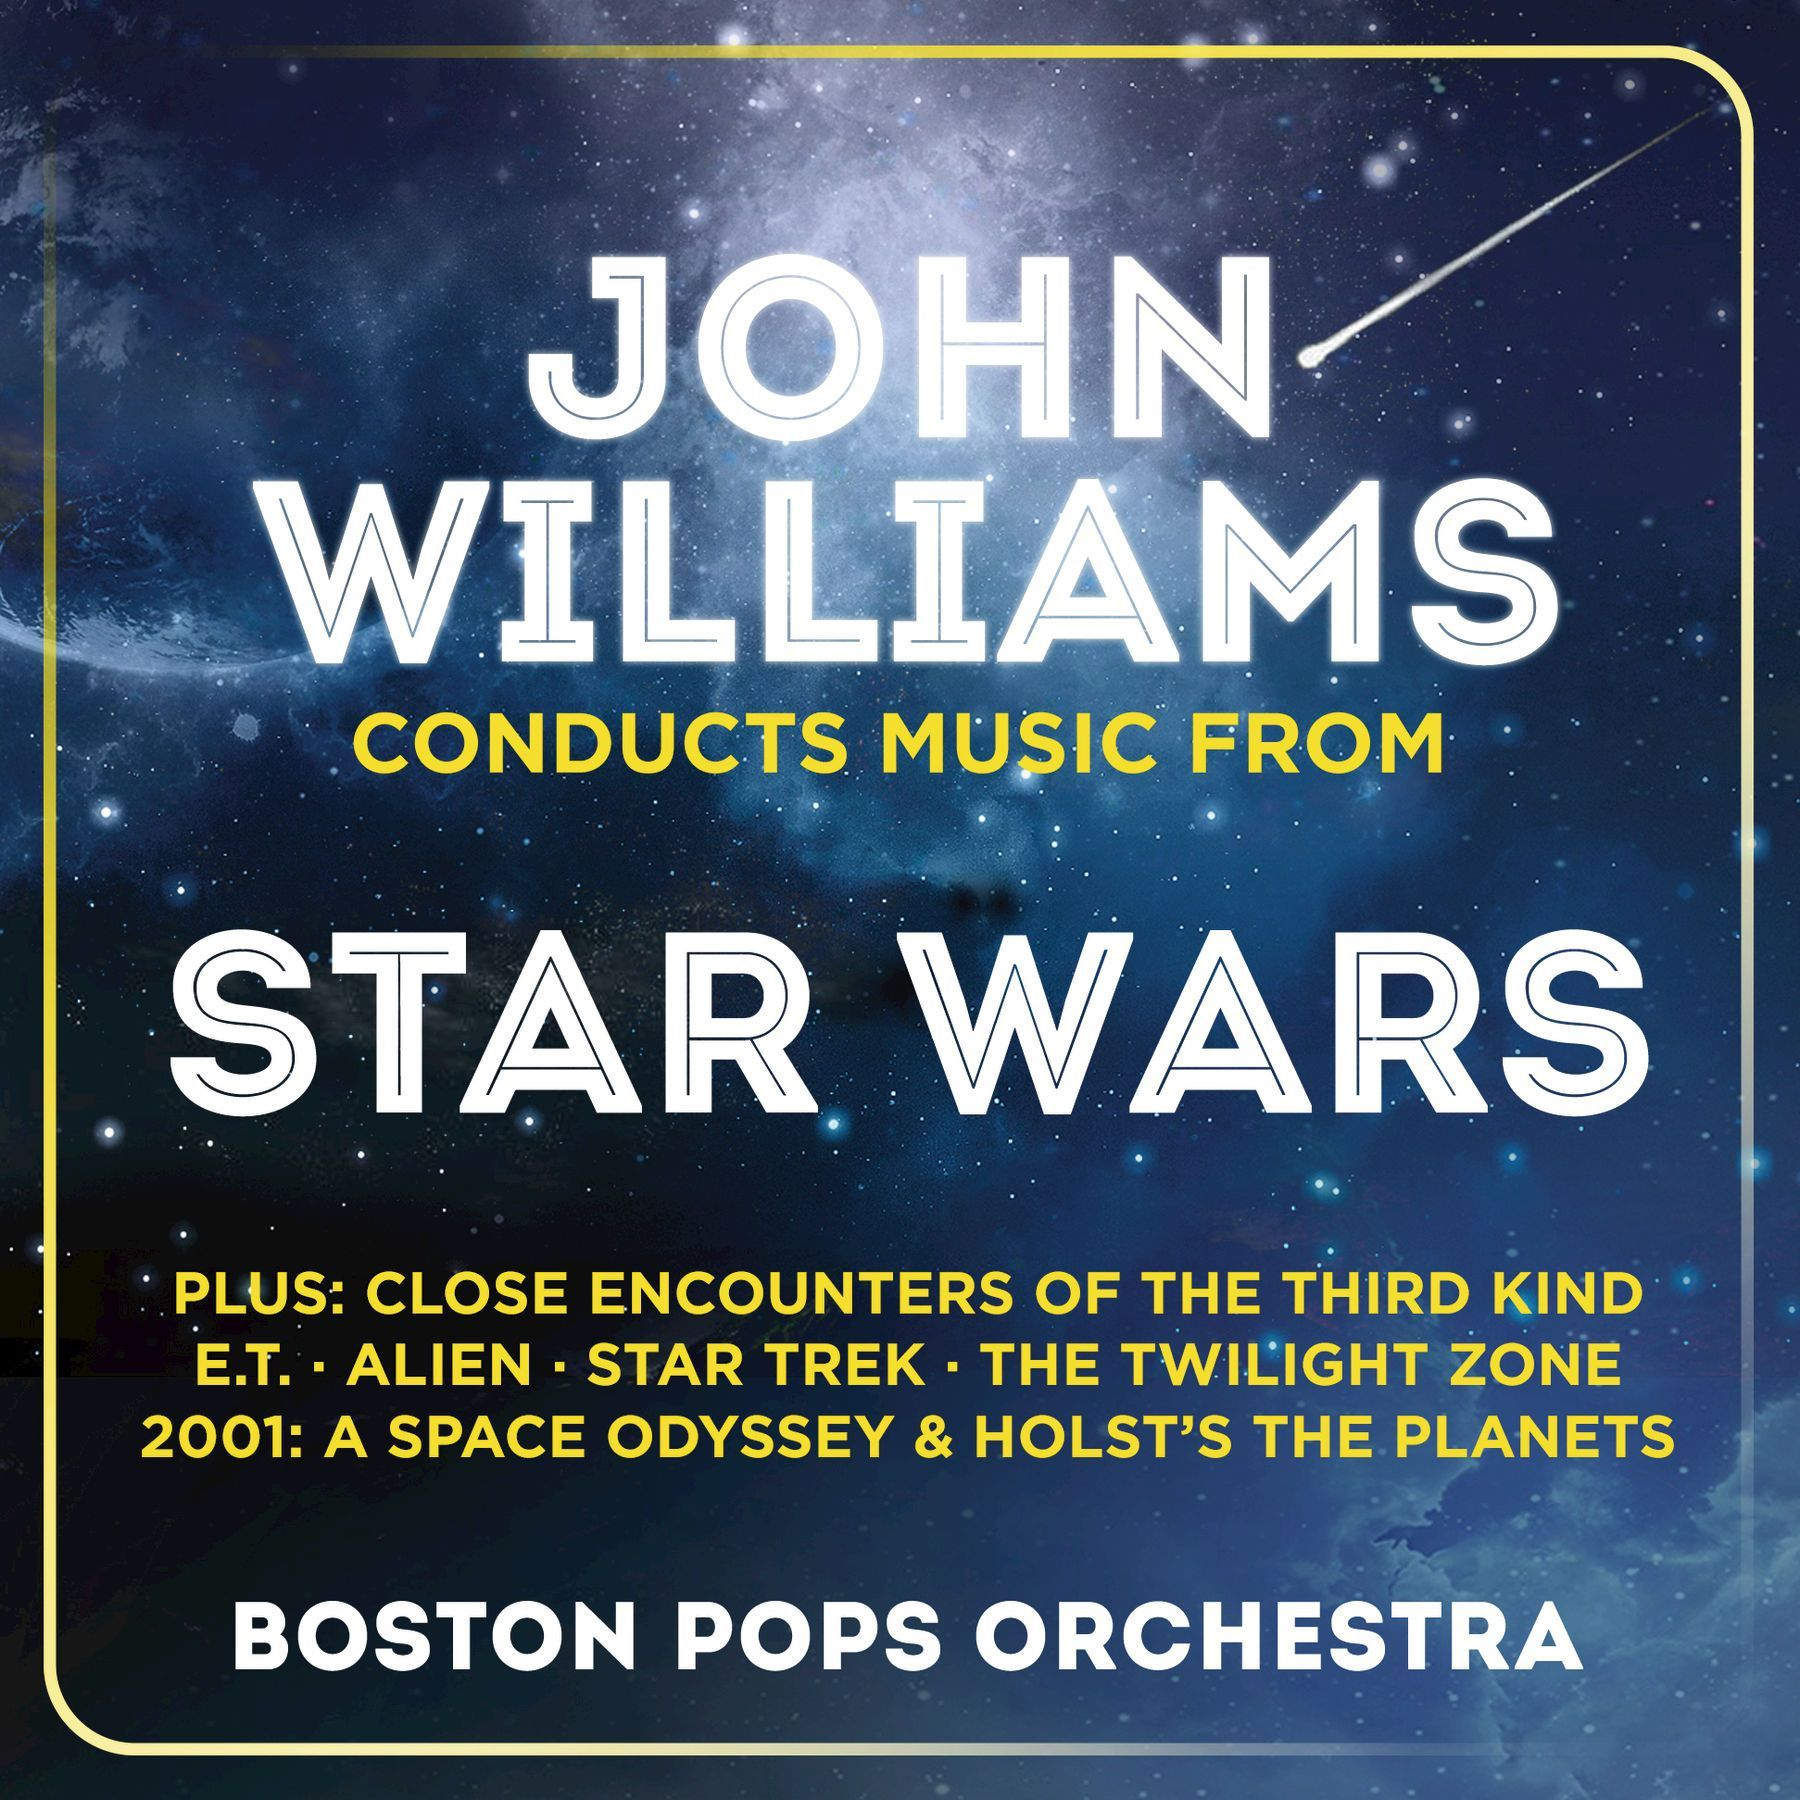 John Williams Conducts Music from Star wars by John Williams with the Boston Pops Orchestra